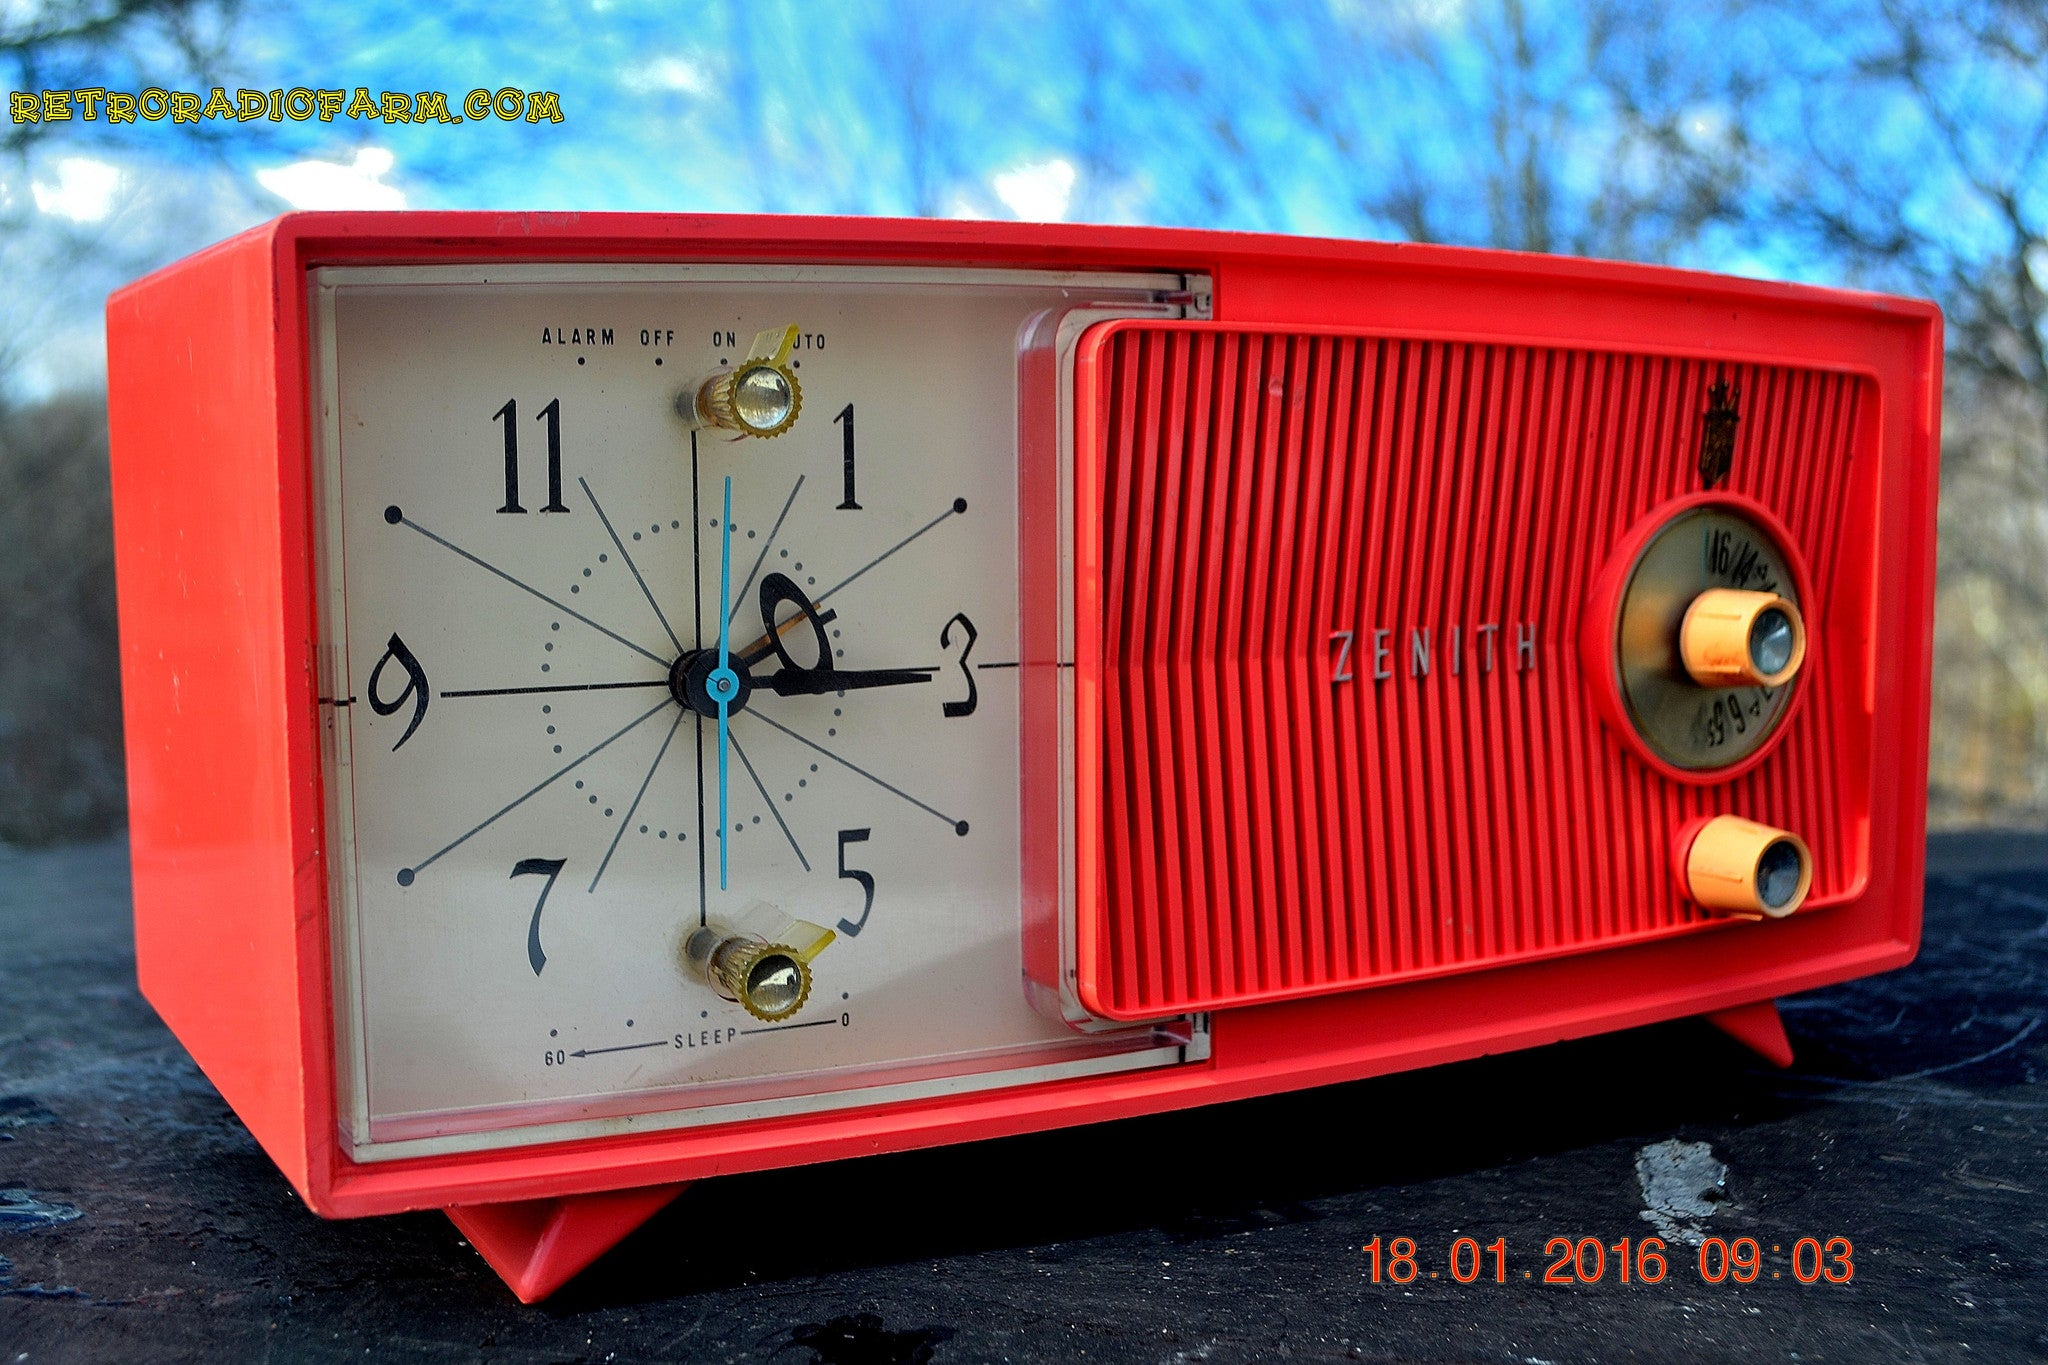 SOLD! - Apr 15, 2016 - BLUETOOTH MP3 Ready - Salmon Pink Mid Century Jetsons 1959 Zenith Model E514A Tube AM Clock Radio Works Great! - [product_type} - General Electric - Retro Radio Farm